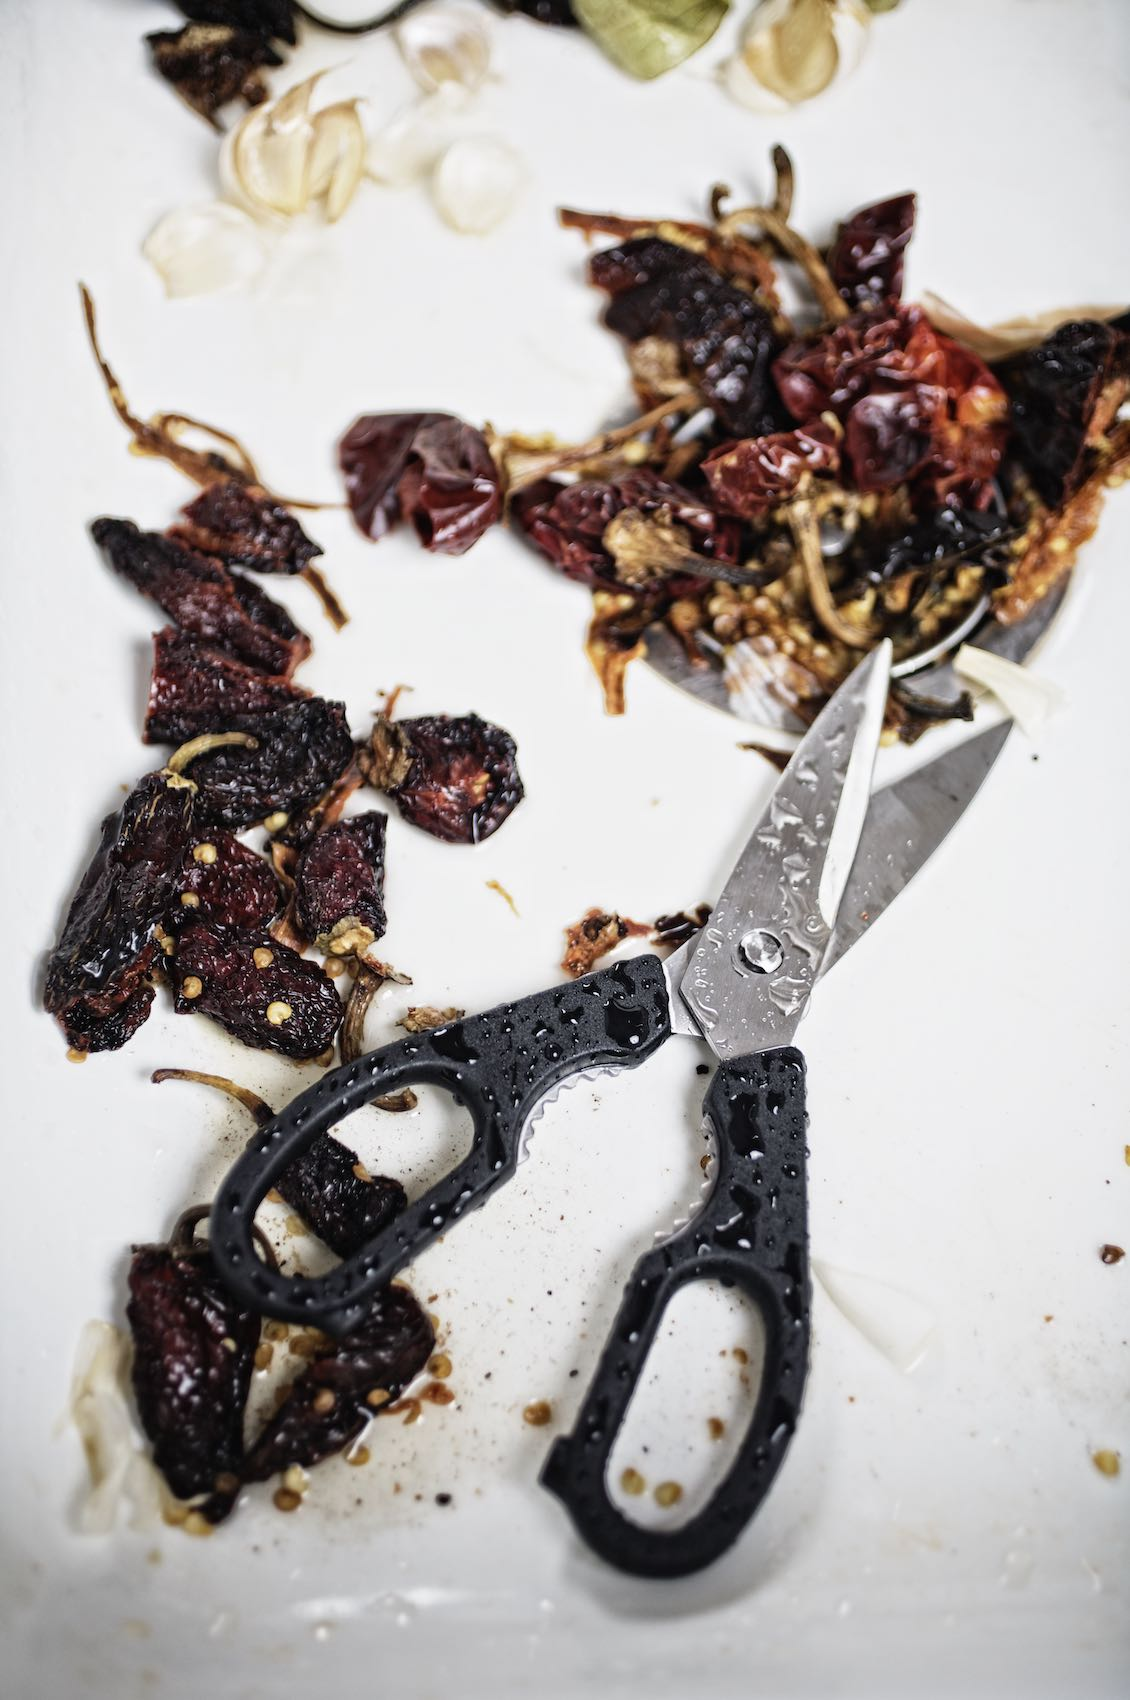 Jody Horton Photography - Scissors cutting dried chilis on a white surface.